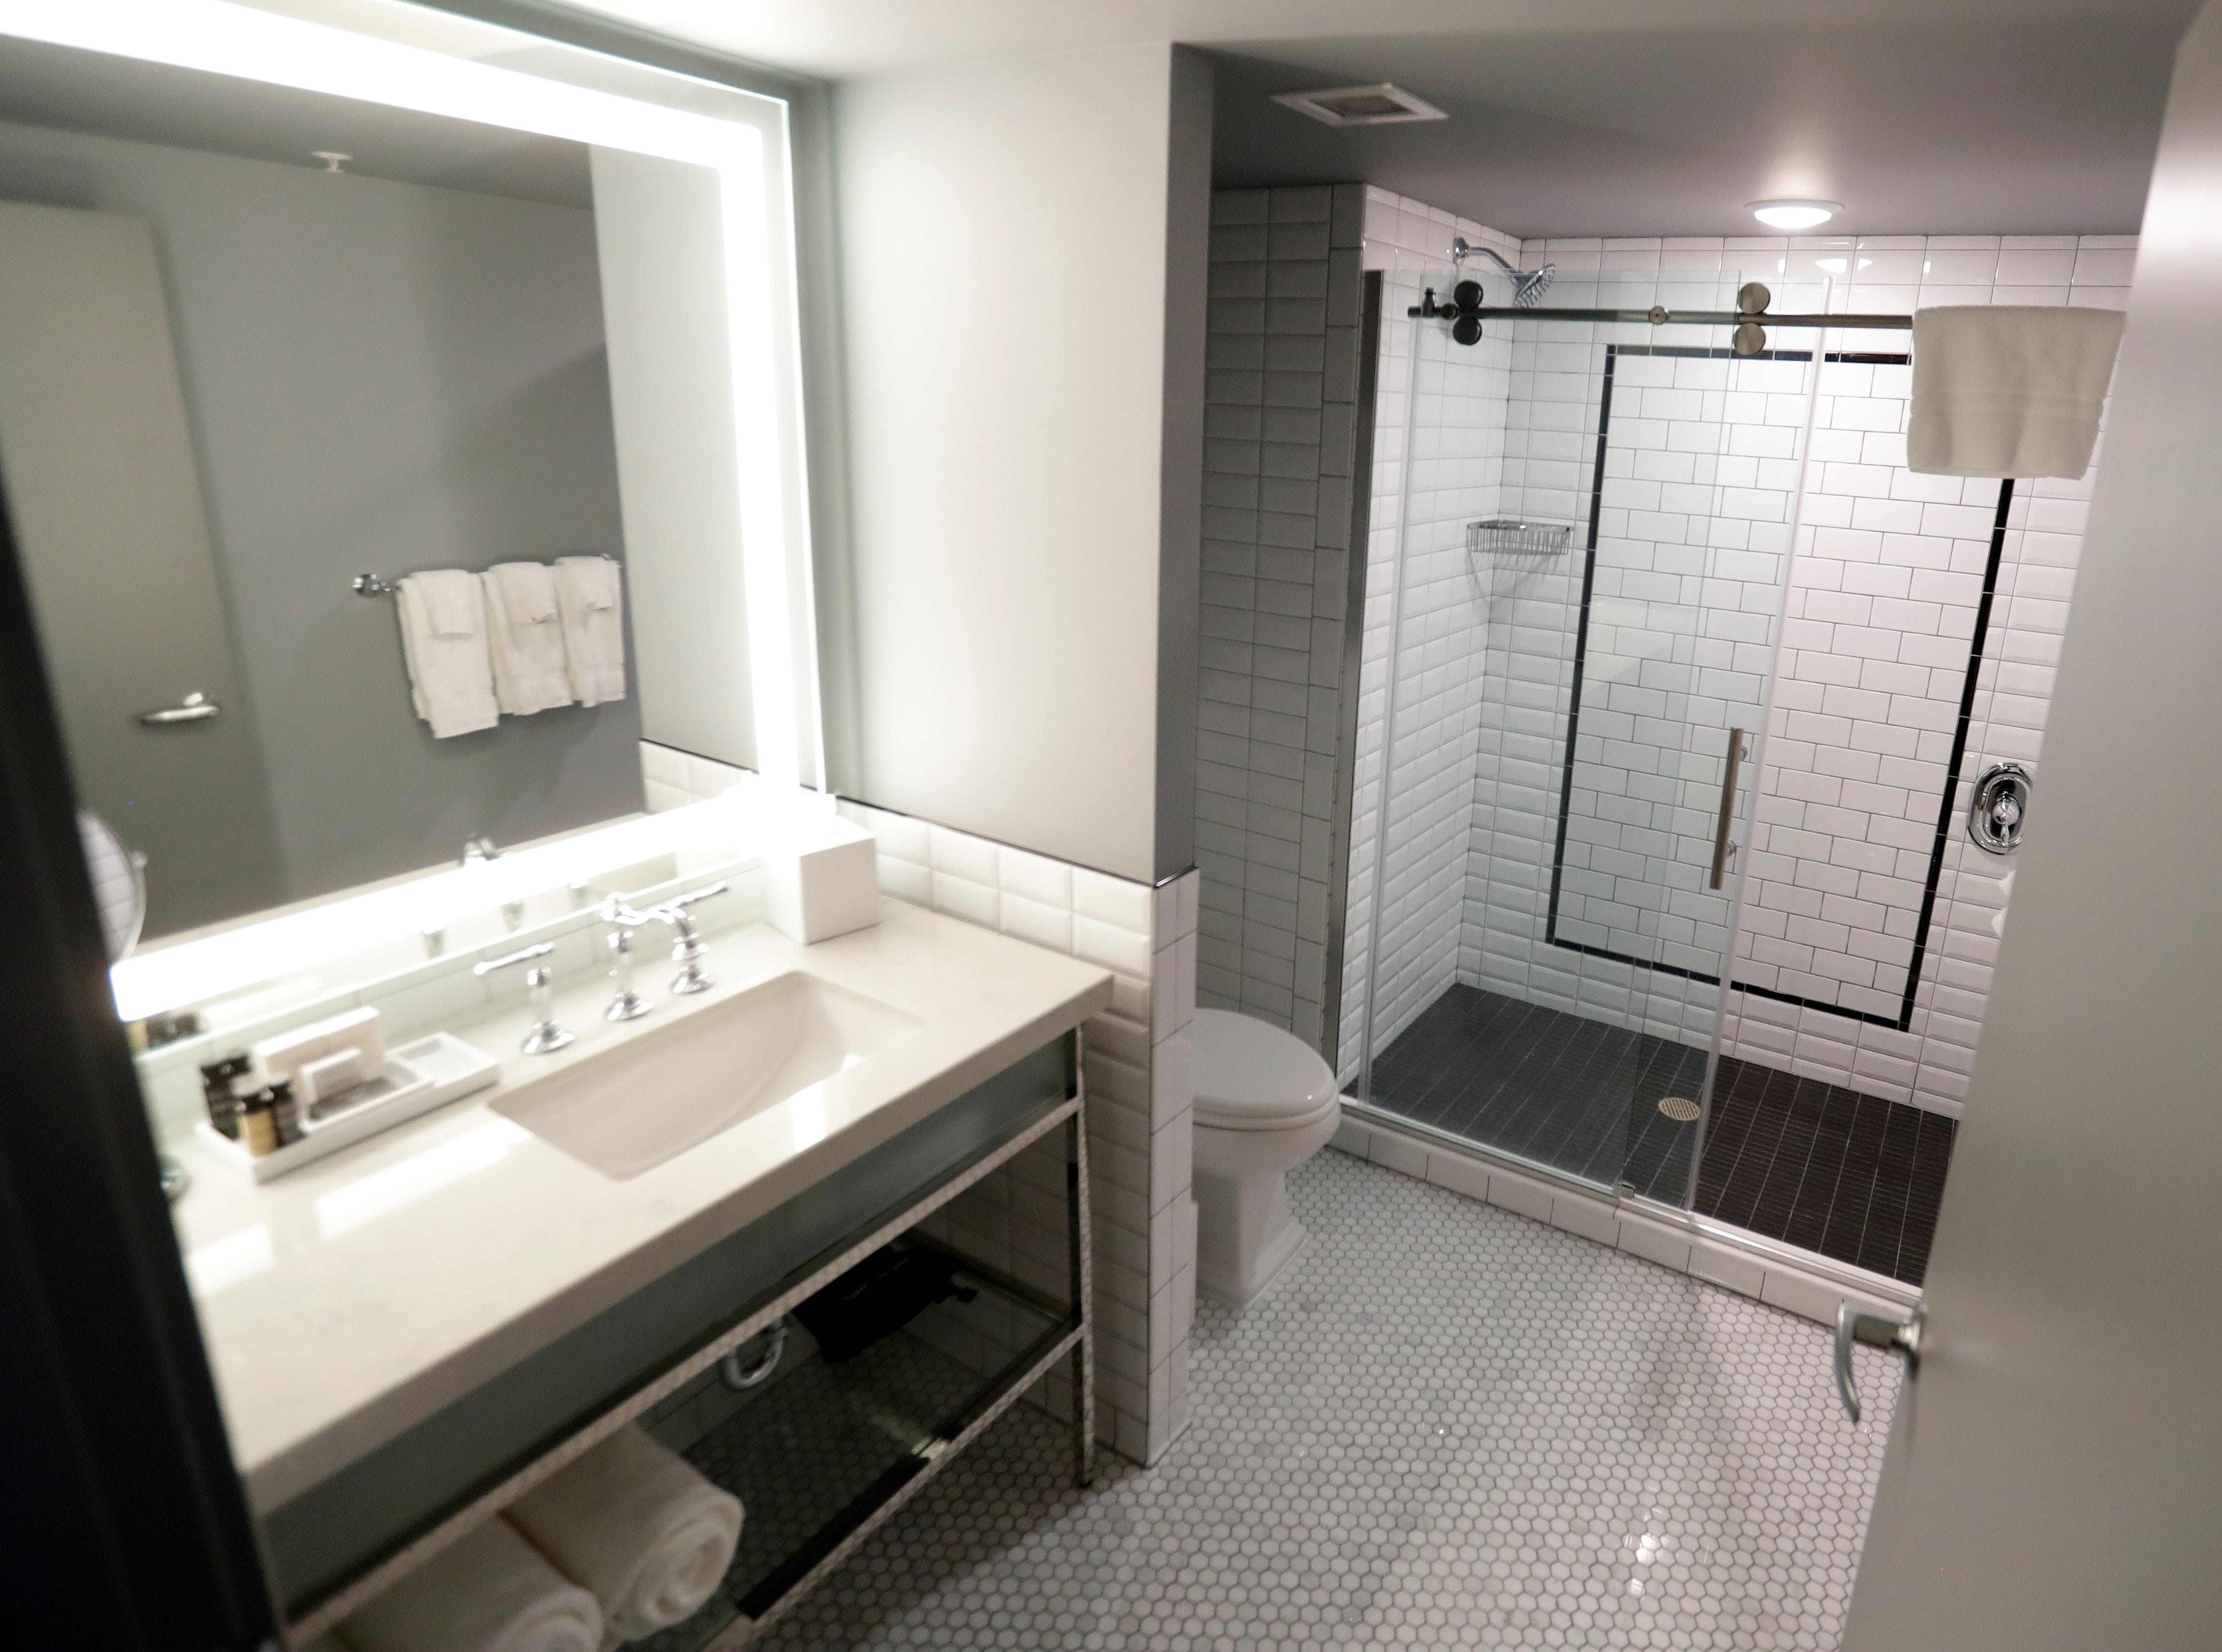 The bathroom in a guestroom of the Hotel Northland, which opens to the public on Feb. 14, 2019.